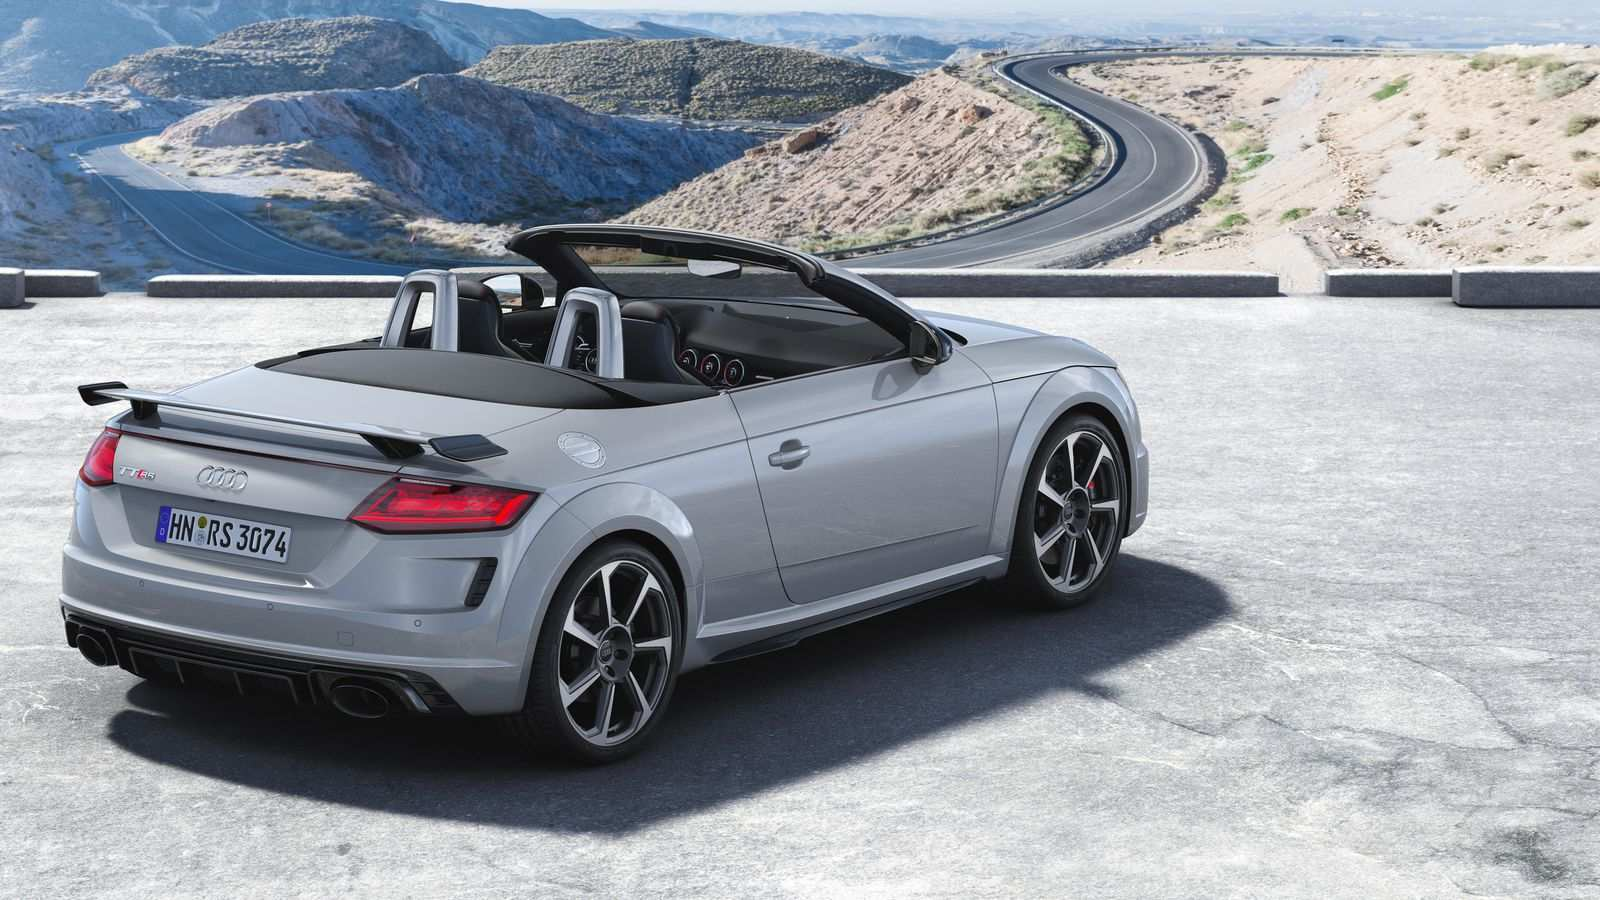 30 The Best 2020 Audi Tt Rs Interior